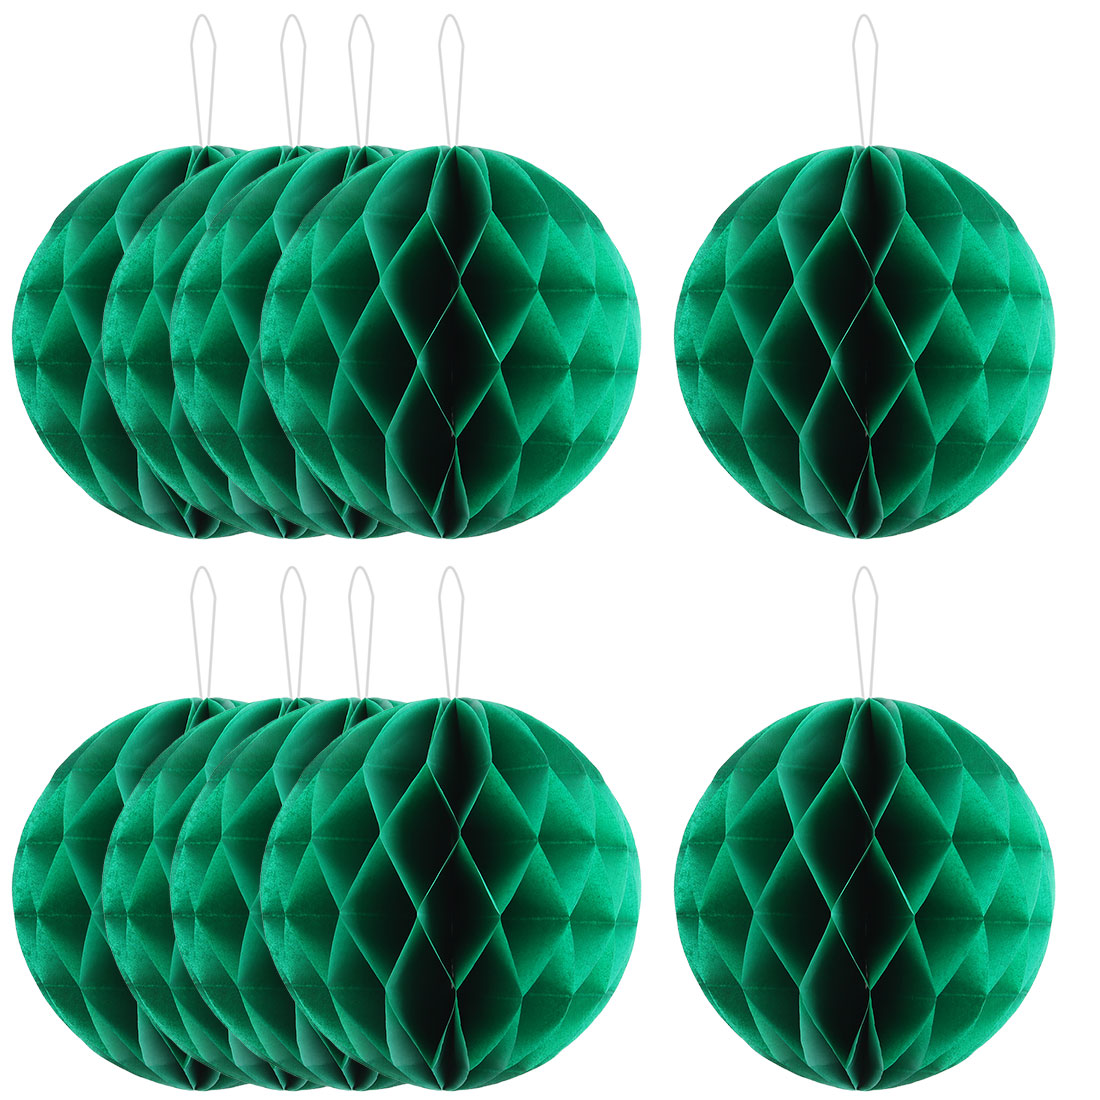 Family Paper Wall Door Hanging Decor Lantern Honeycomb Ball Green 10 Inch Dia 10 Pcs